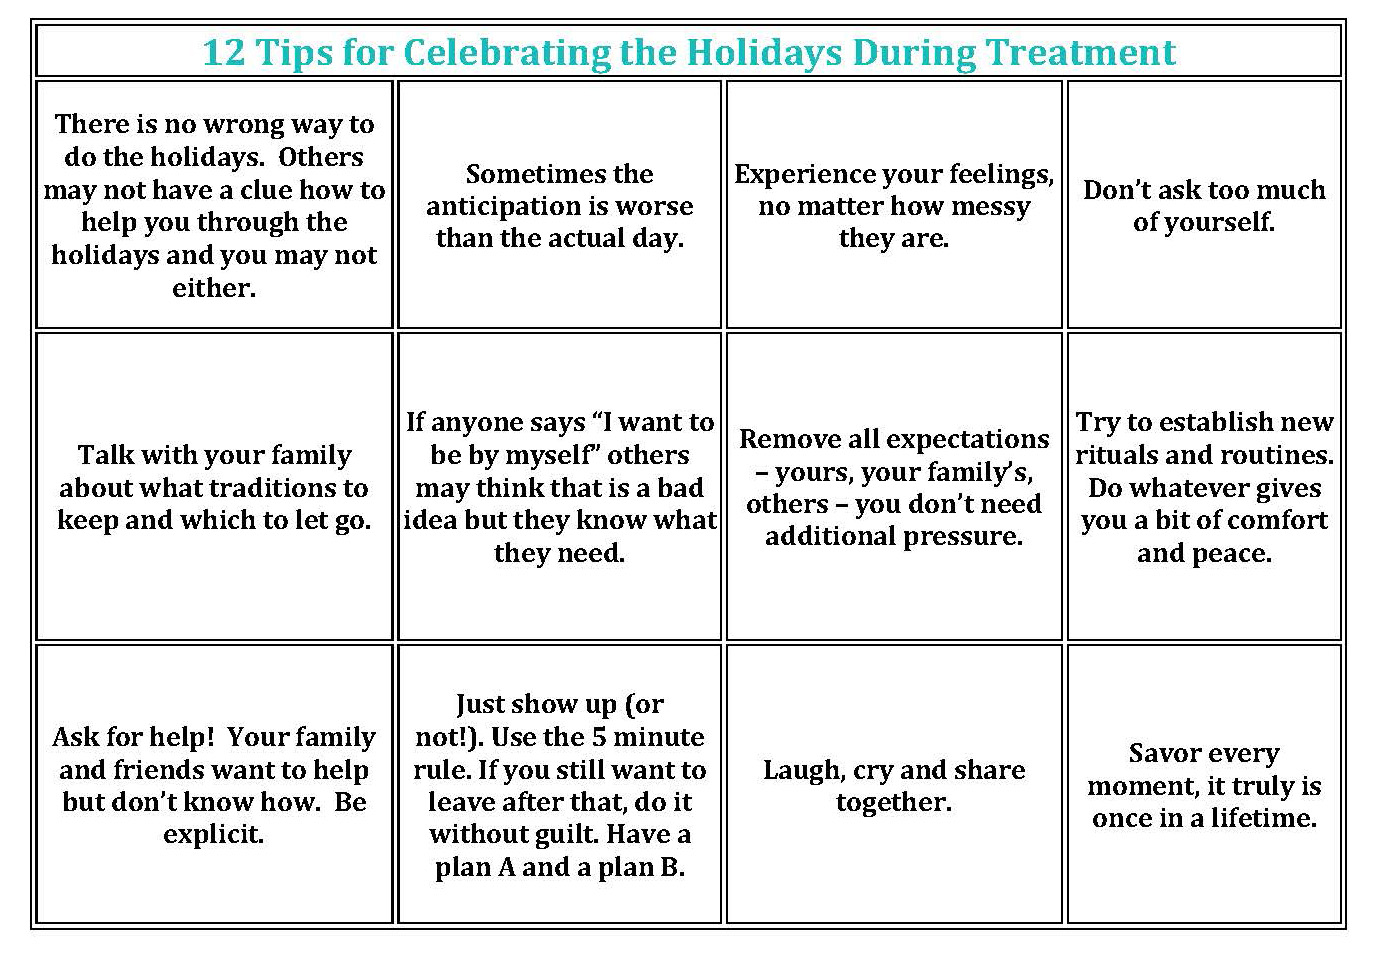 12 Tips for Celebrating the Holidays During Treatment